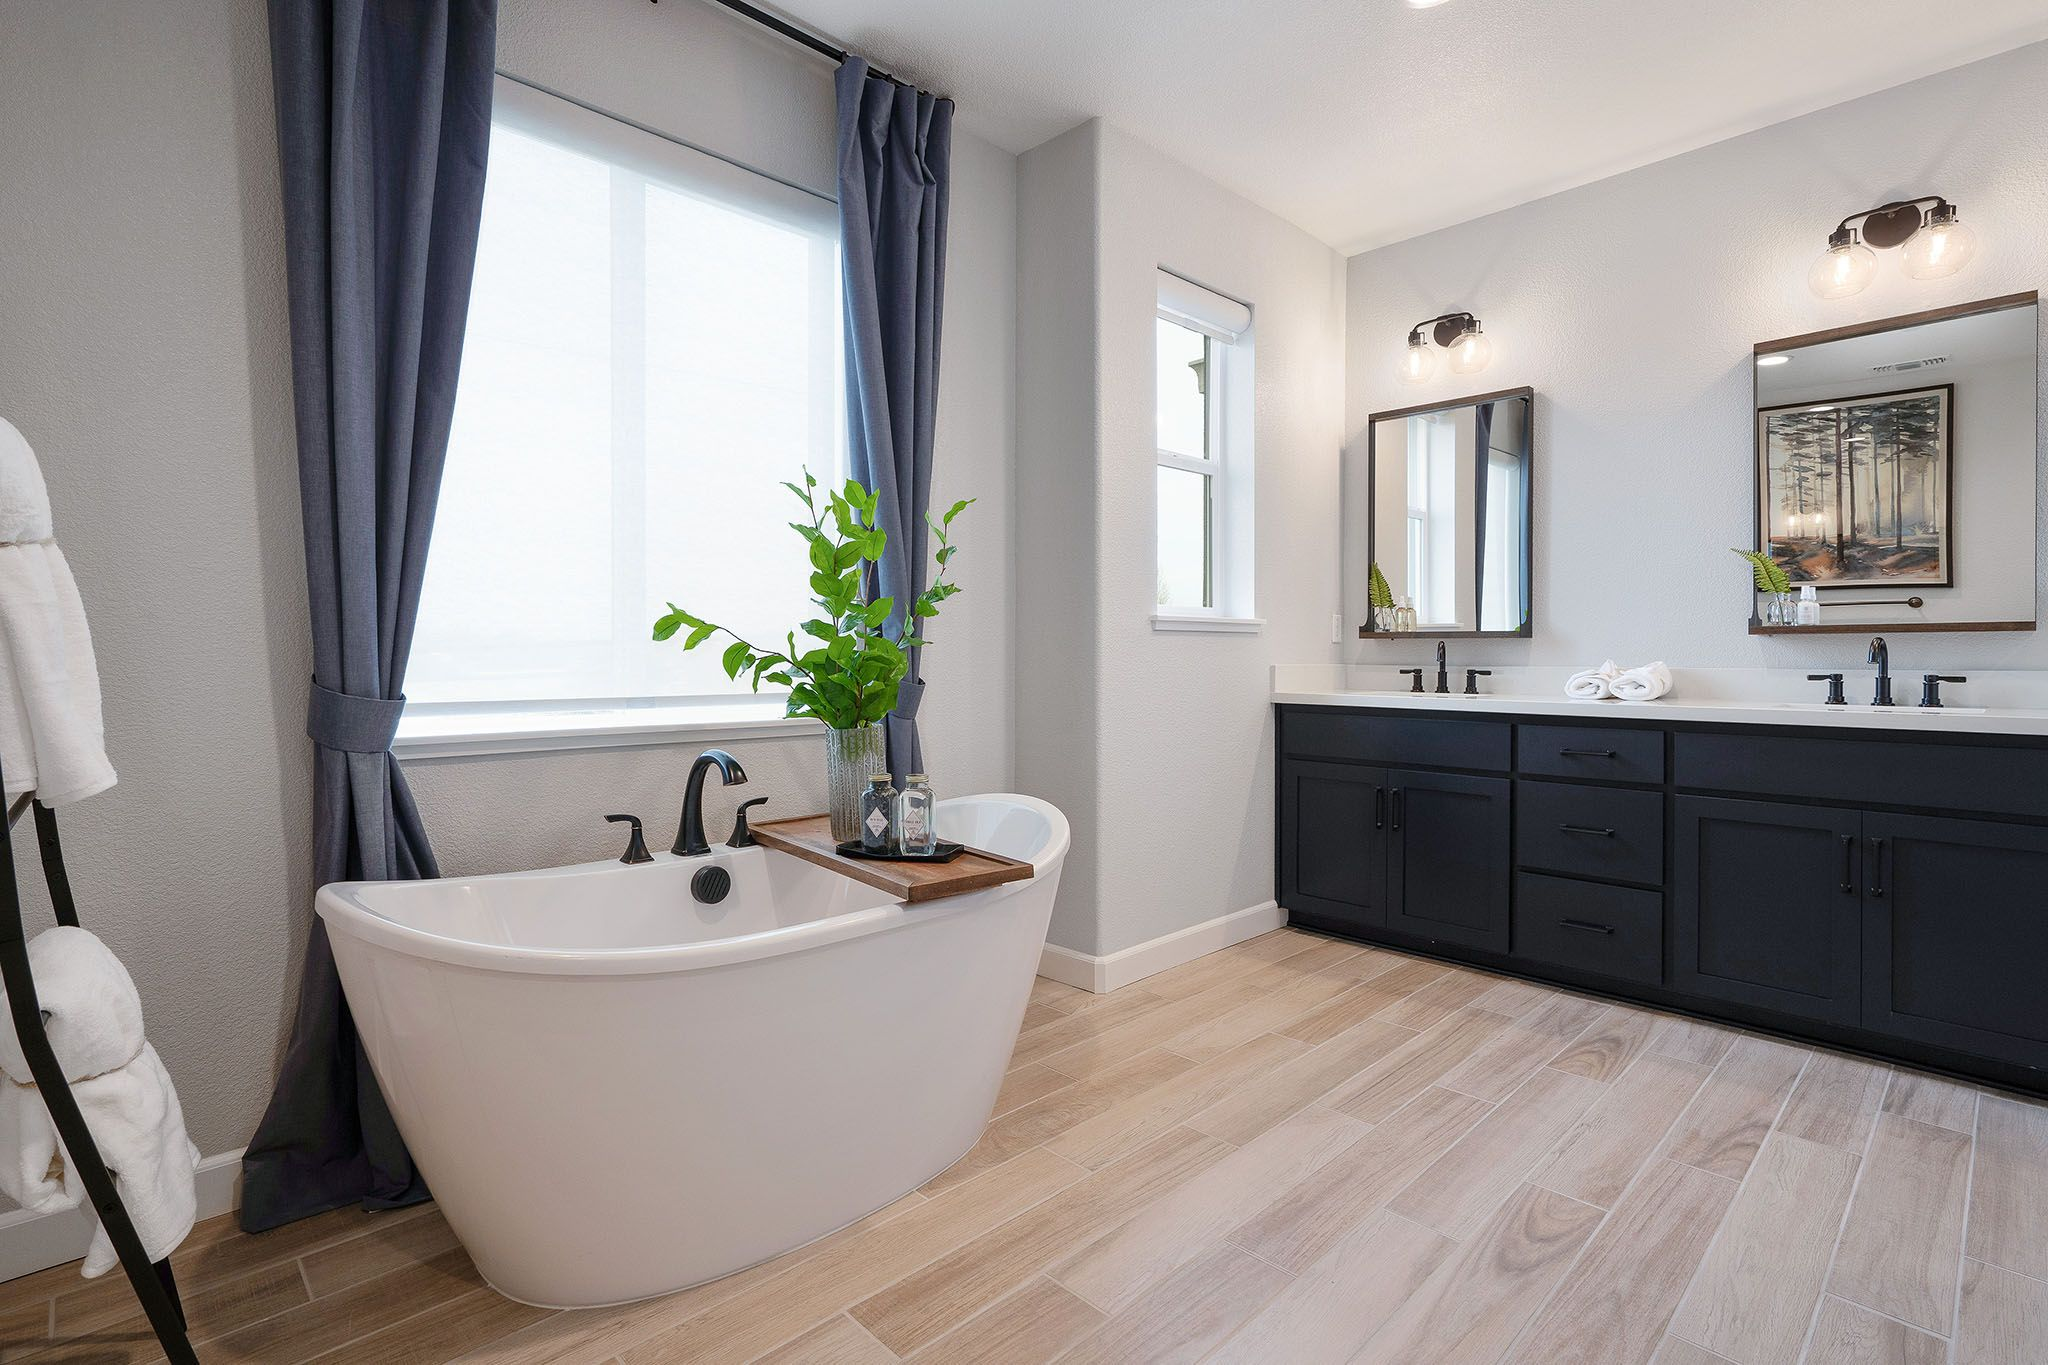 Bathroom featured in the Cristata By Discovery Homes in Vallejo-Napa, CA